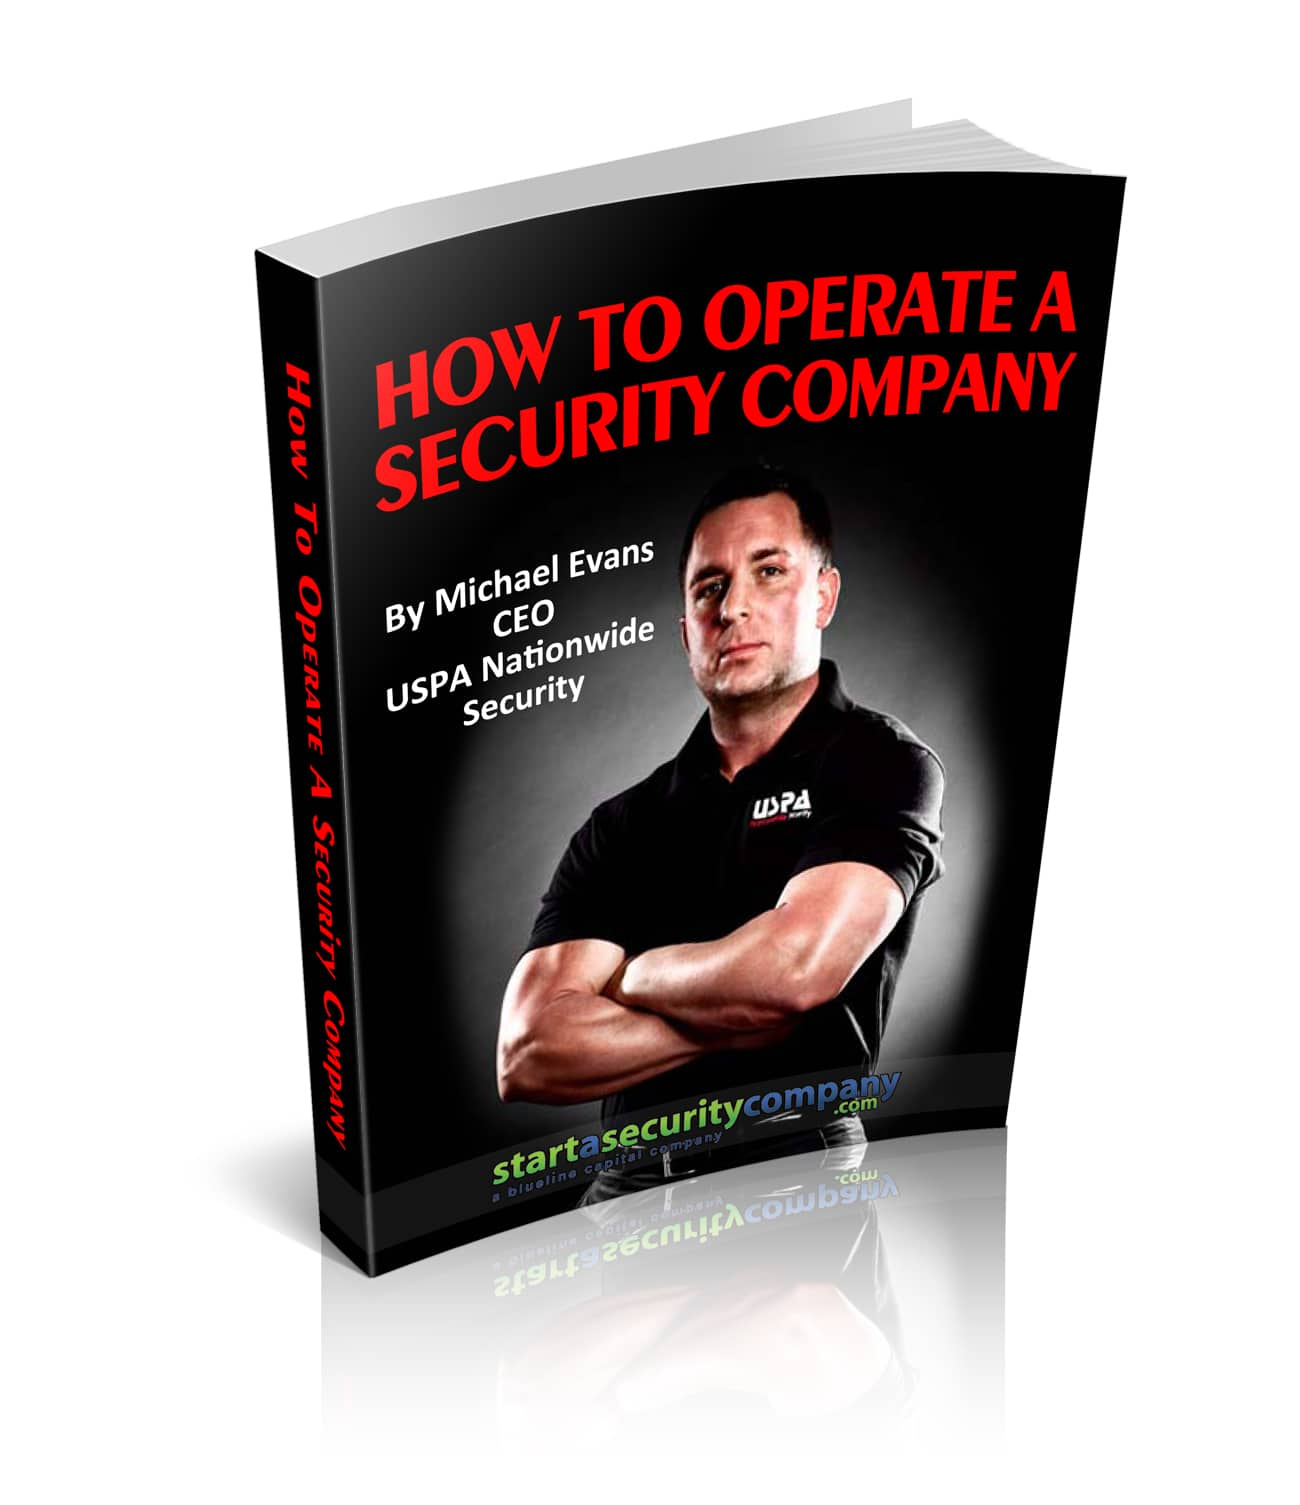 How-To-Operate-A-Security-Company